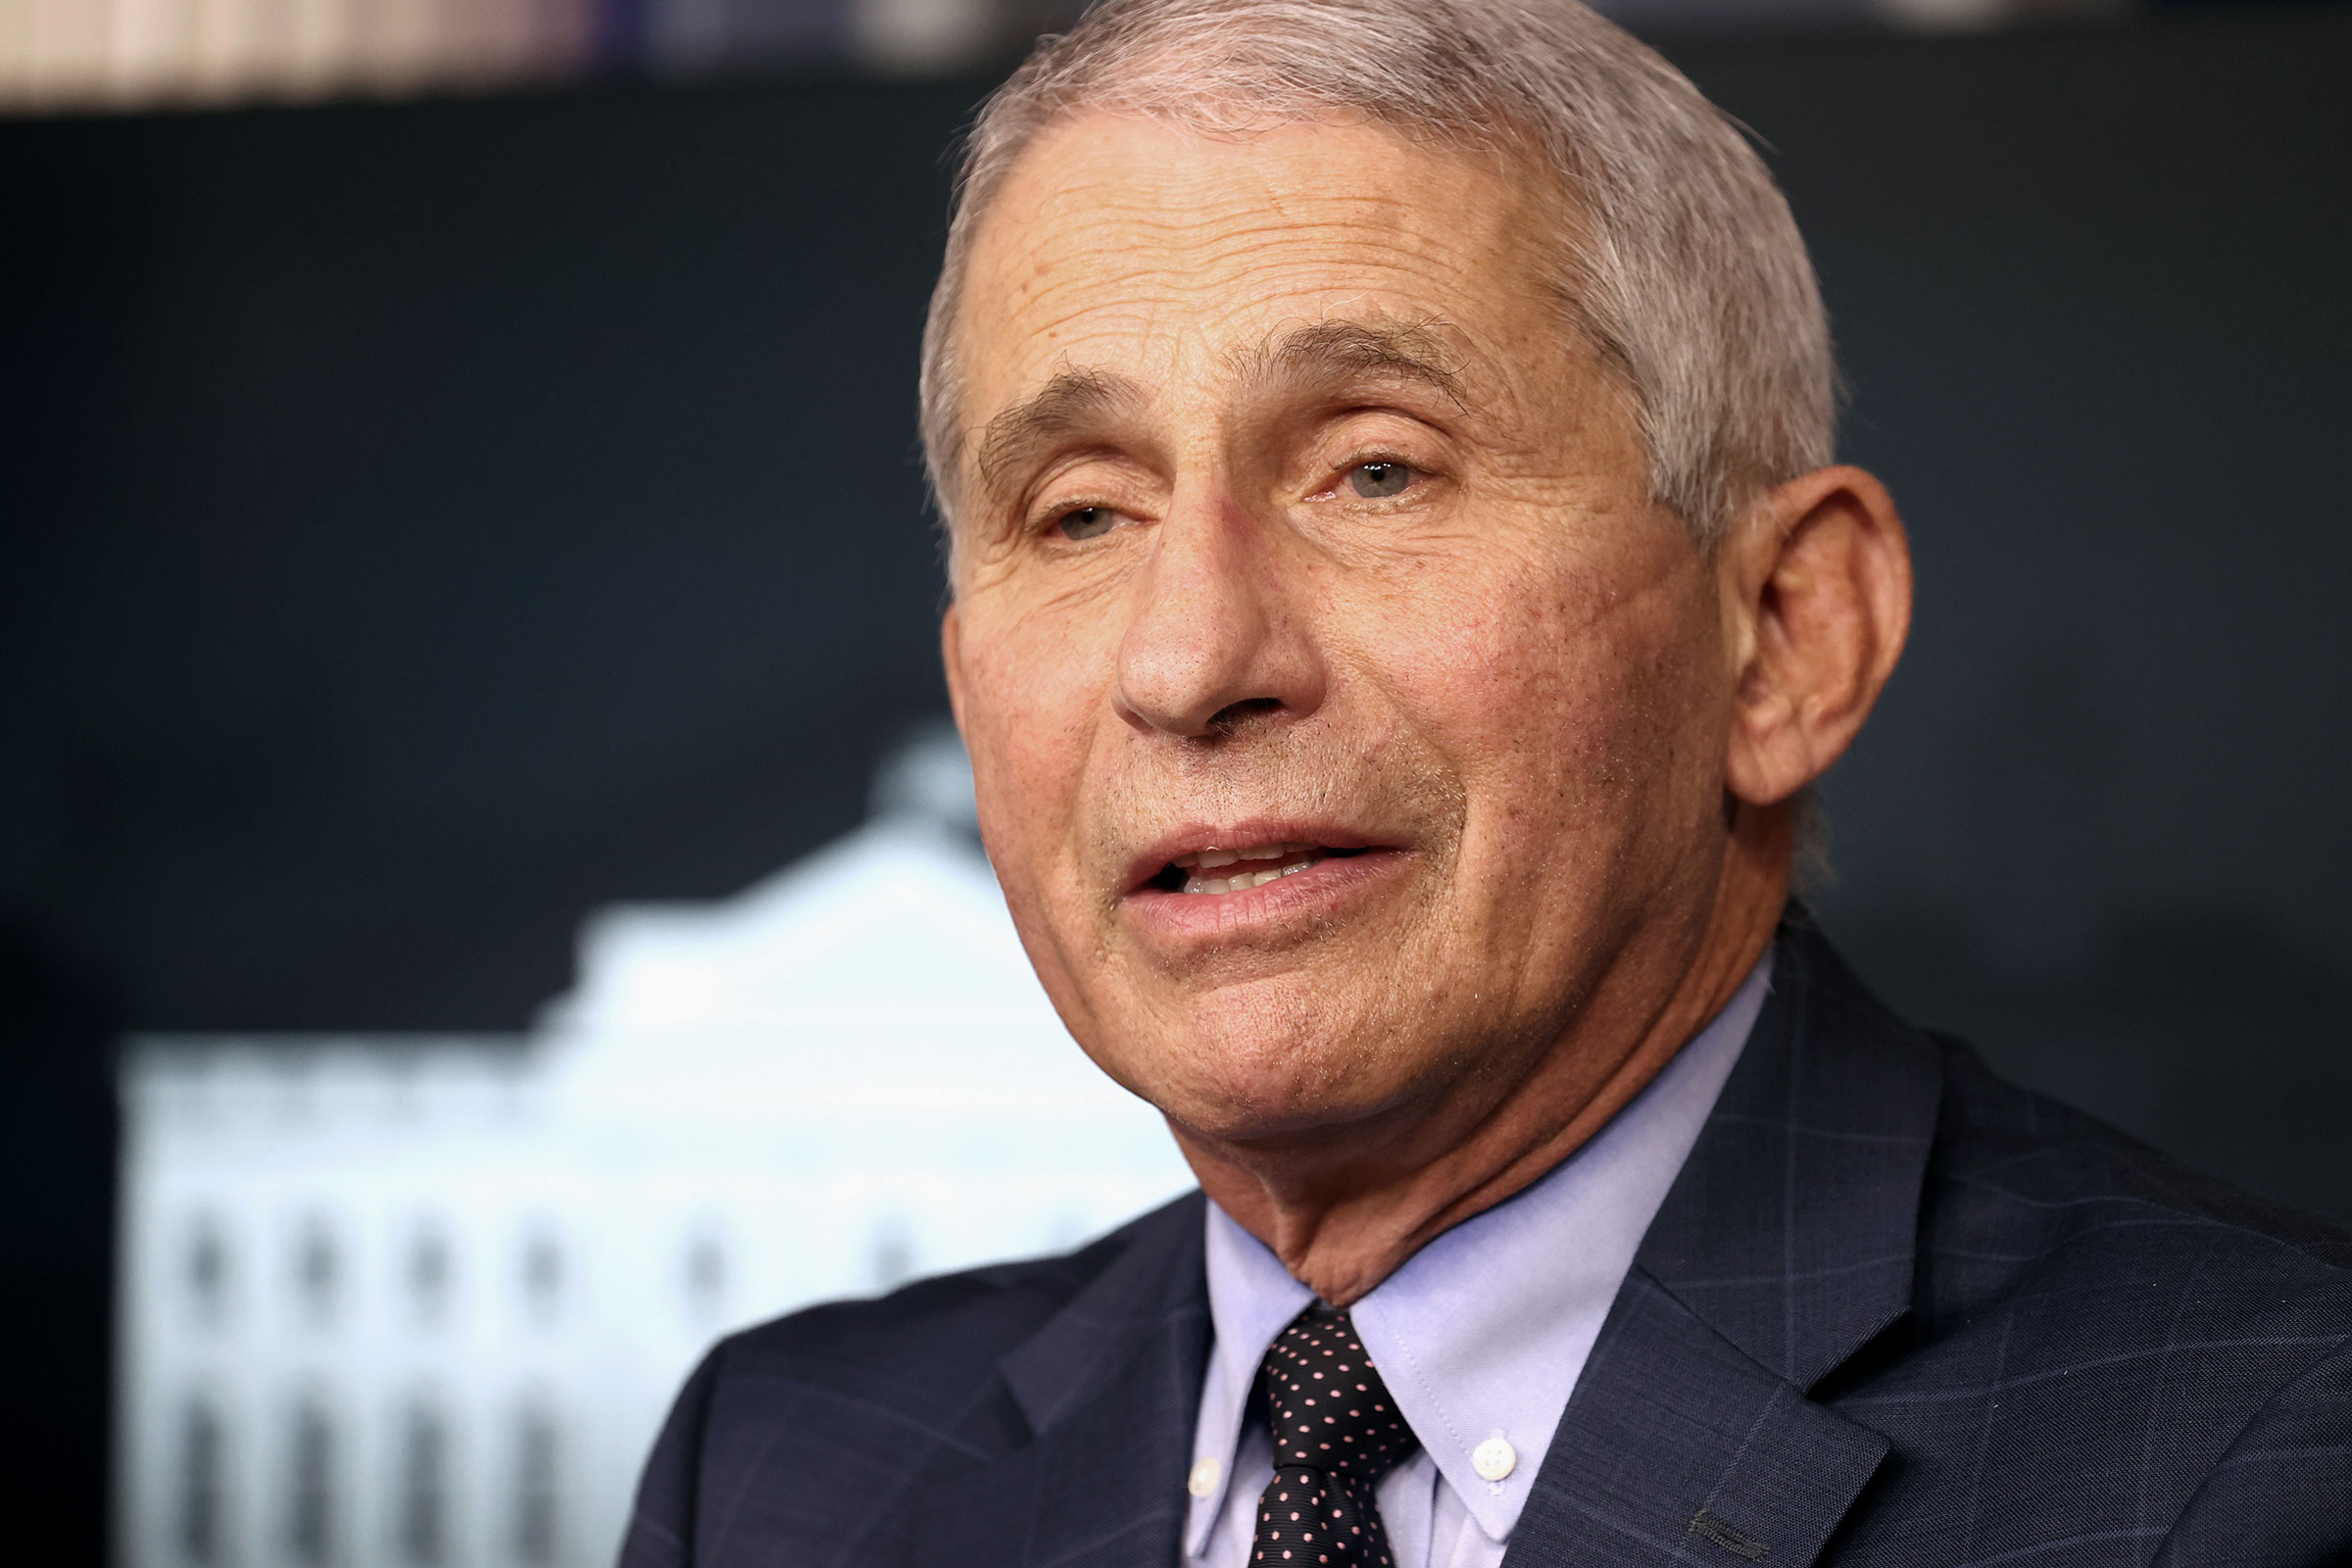 Dr. Anthony Fauci speaks during a White House Coronavirus Task Force press briefing on November 19 in Washington, DC.